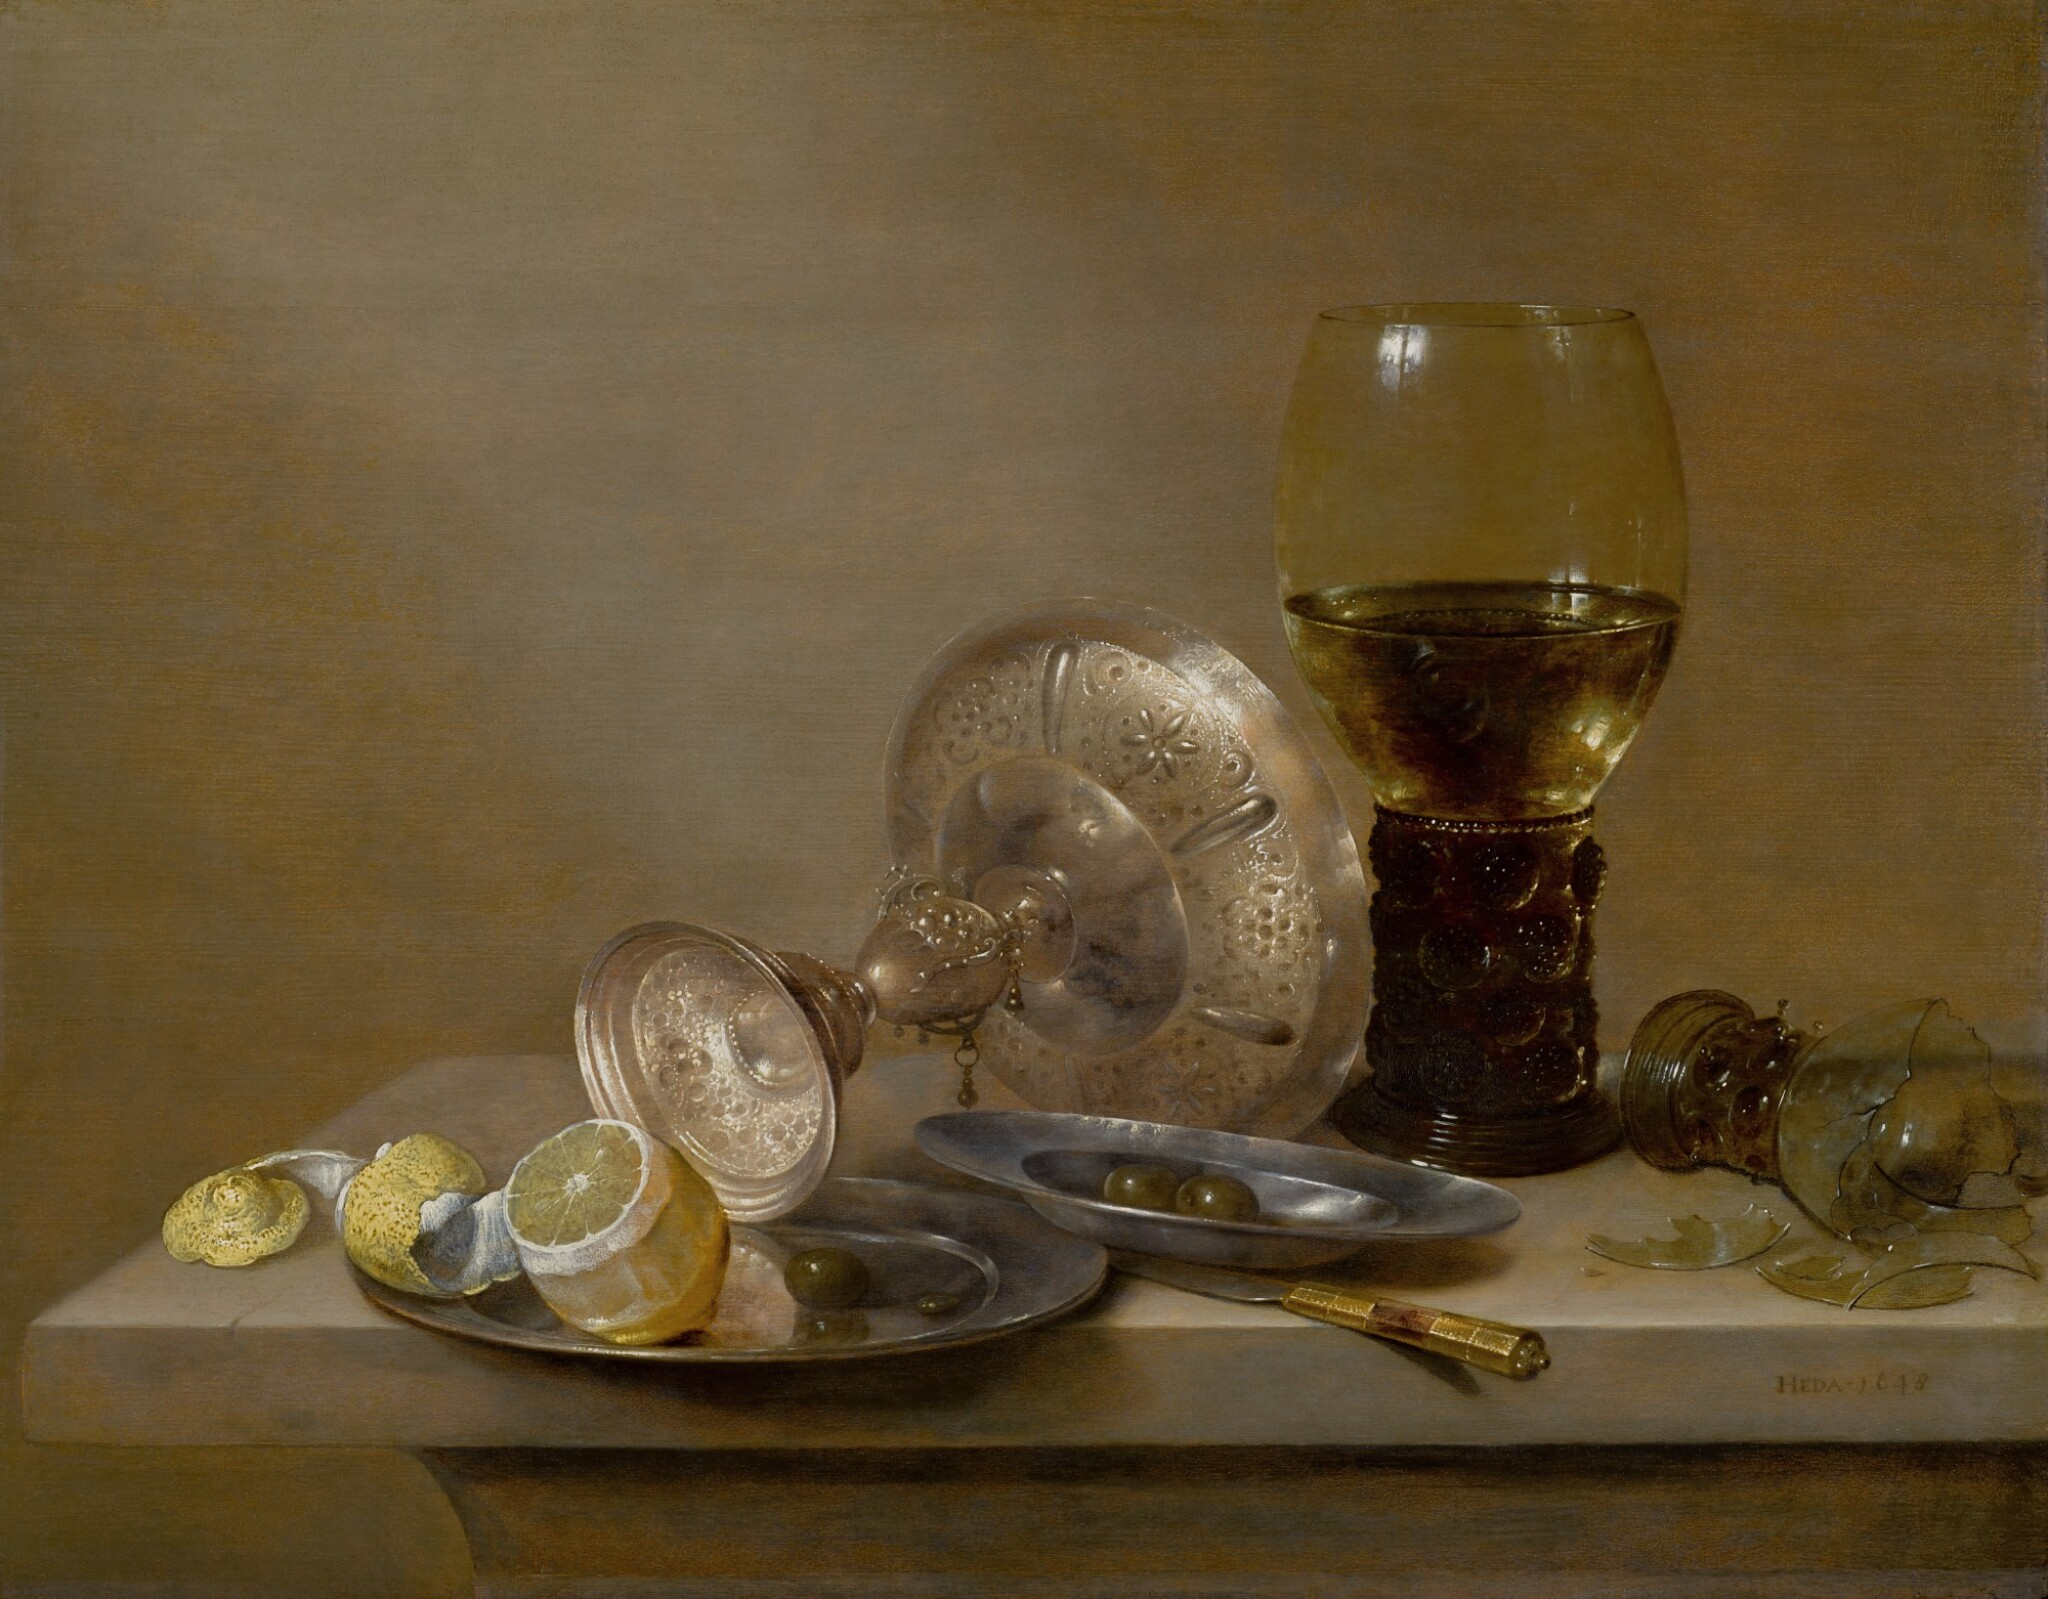 View full screen - View 1 of Lot 24. A vanitas still life with a broken roemer, an upturned tazza and a peeled lemon, all on a ledge   《虛空派靜物畫:石架上的破酒杯、倒轉的扁花瓶與去皮檸檬》.